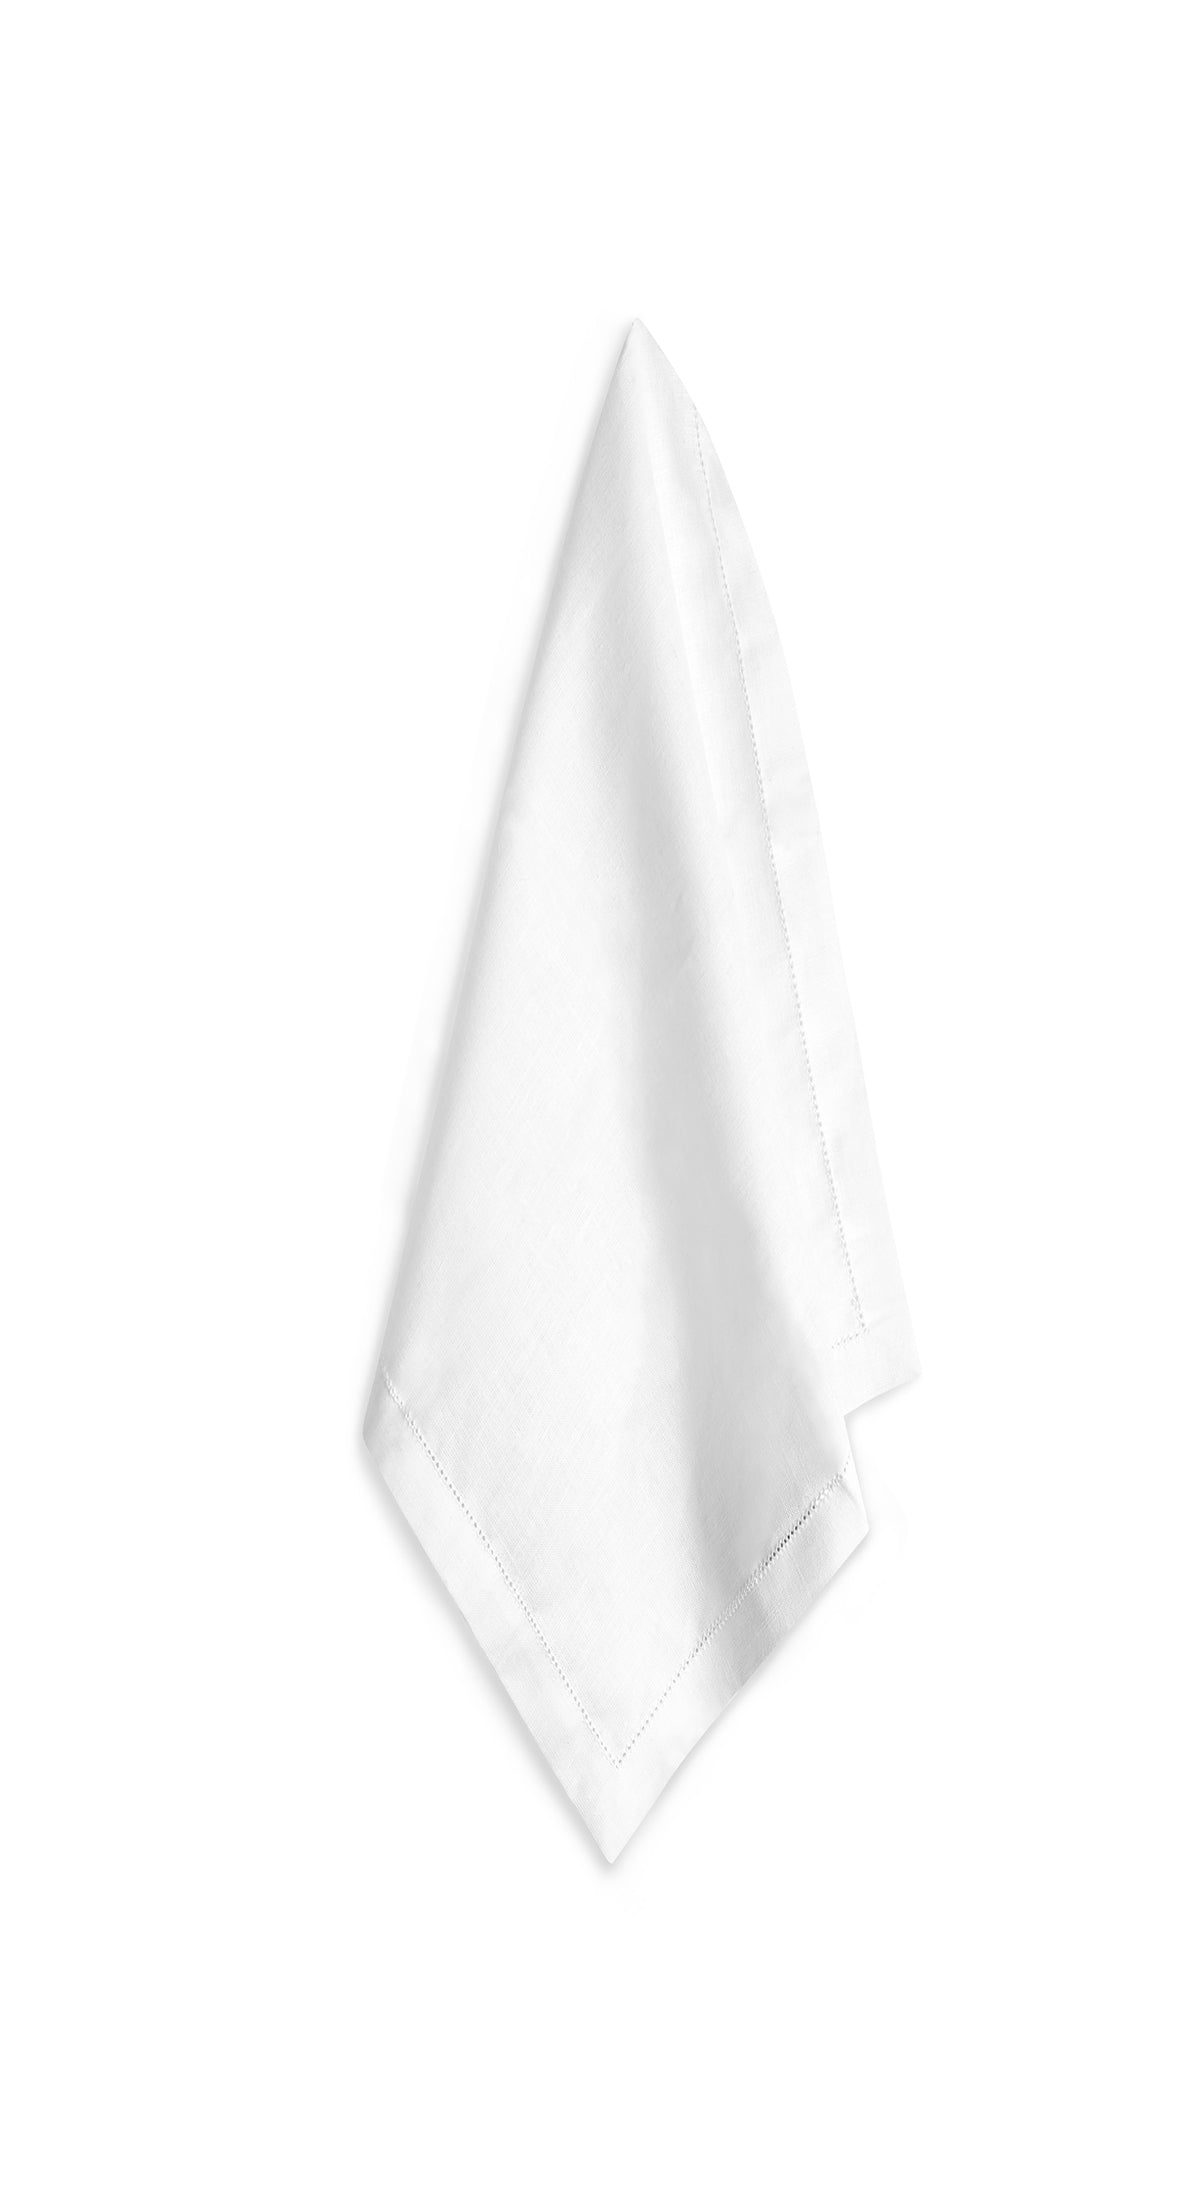 S&B Beautiful White Hemstitch Linen Napkin